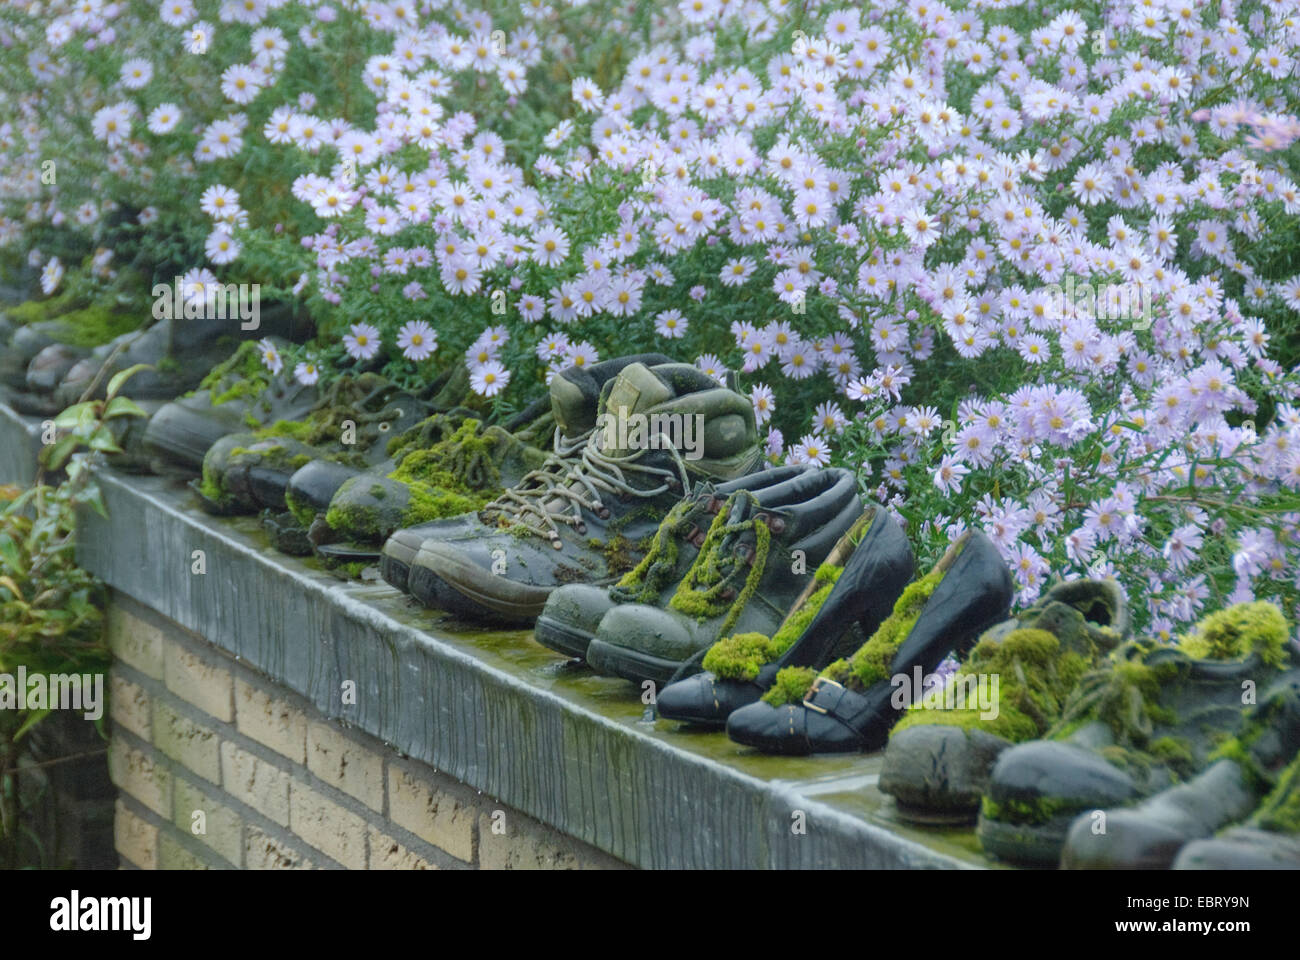 mossy garden shoes on a wall in garden - Stock Image